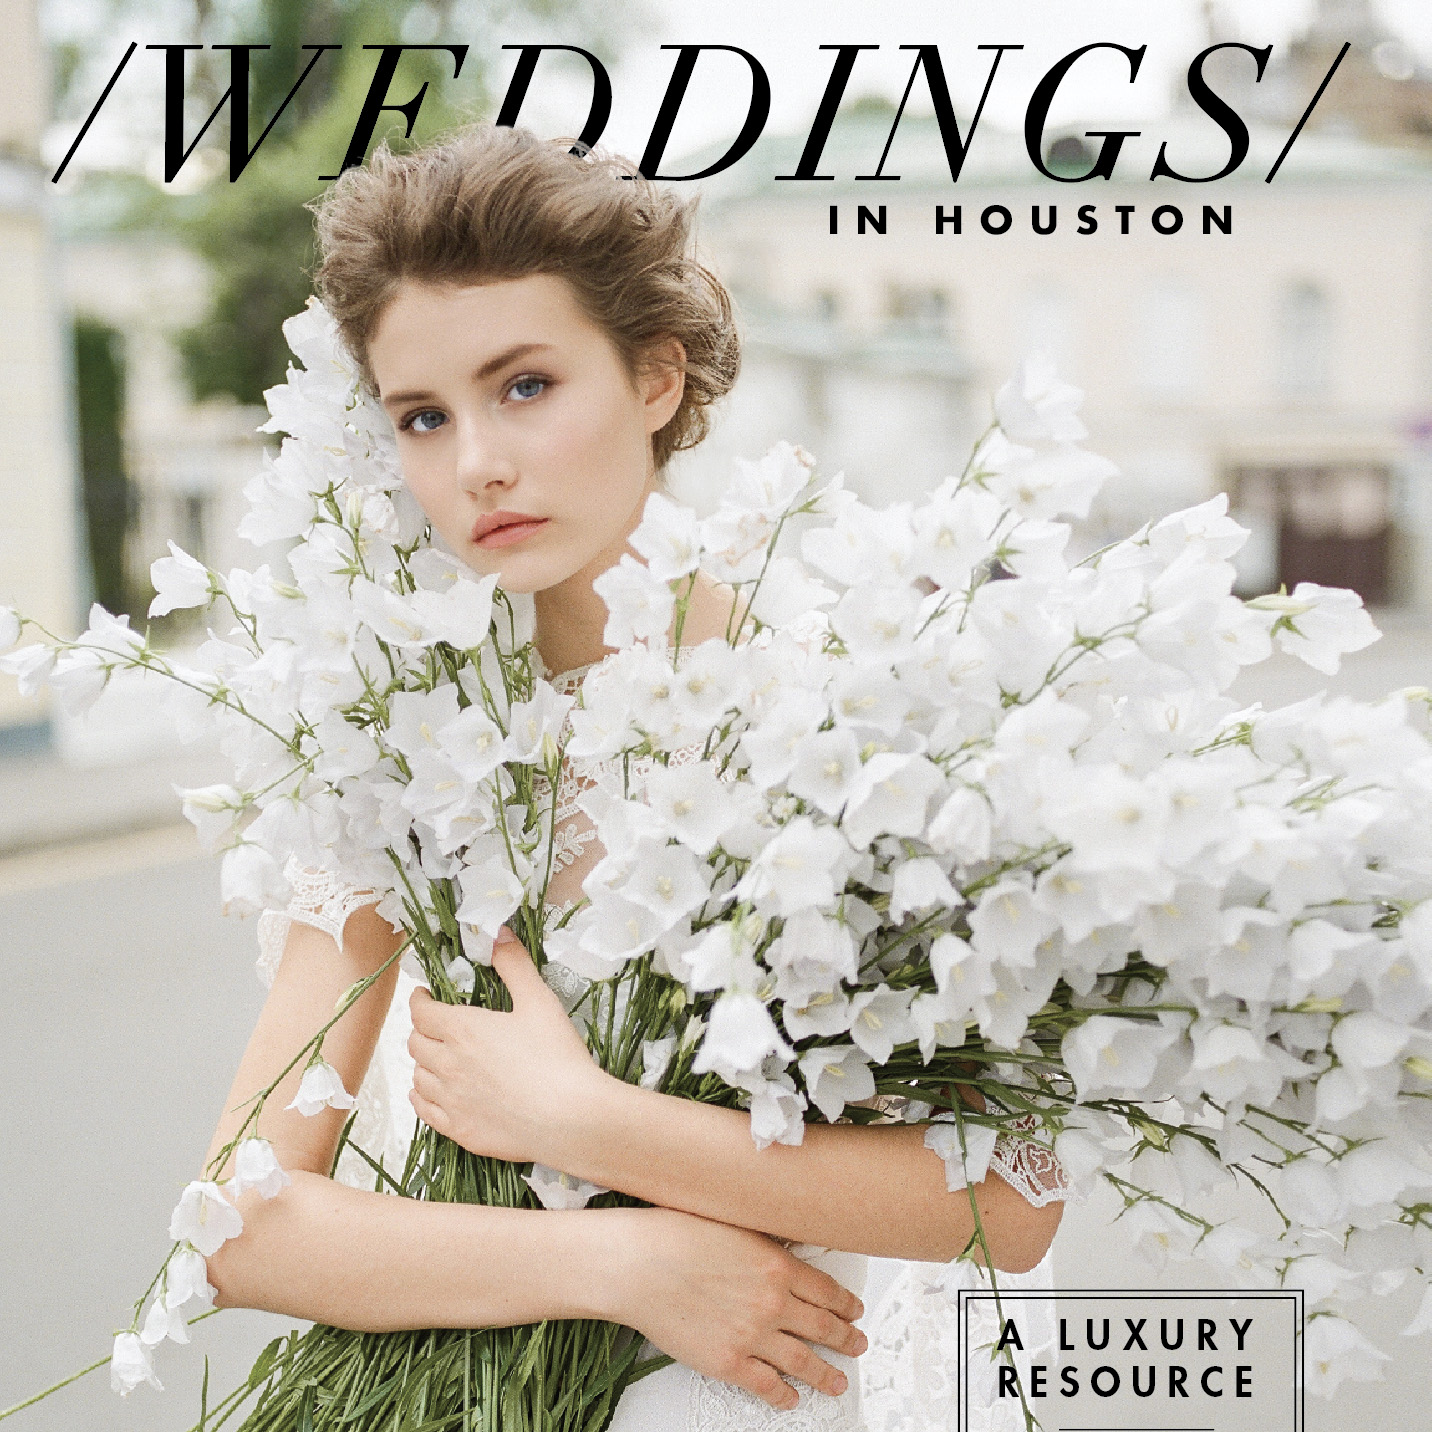 Plan The Perfect Houston Wedding - Luxury Wedding Magazine - Houston, TX